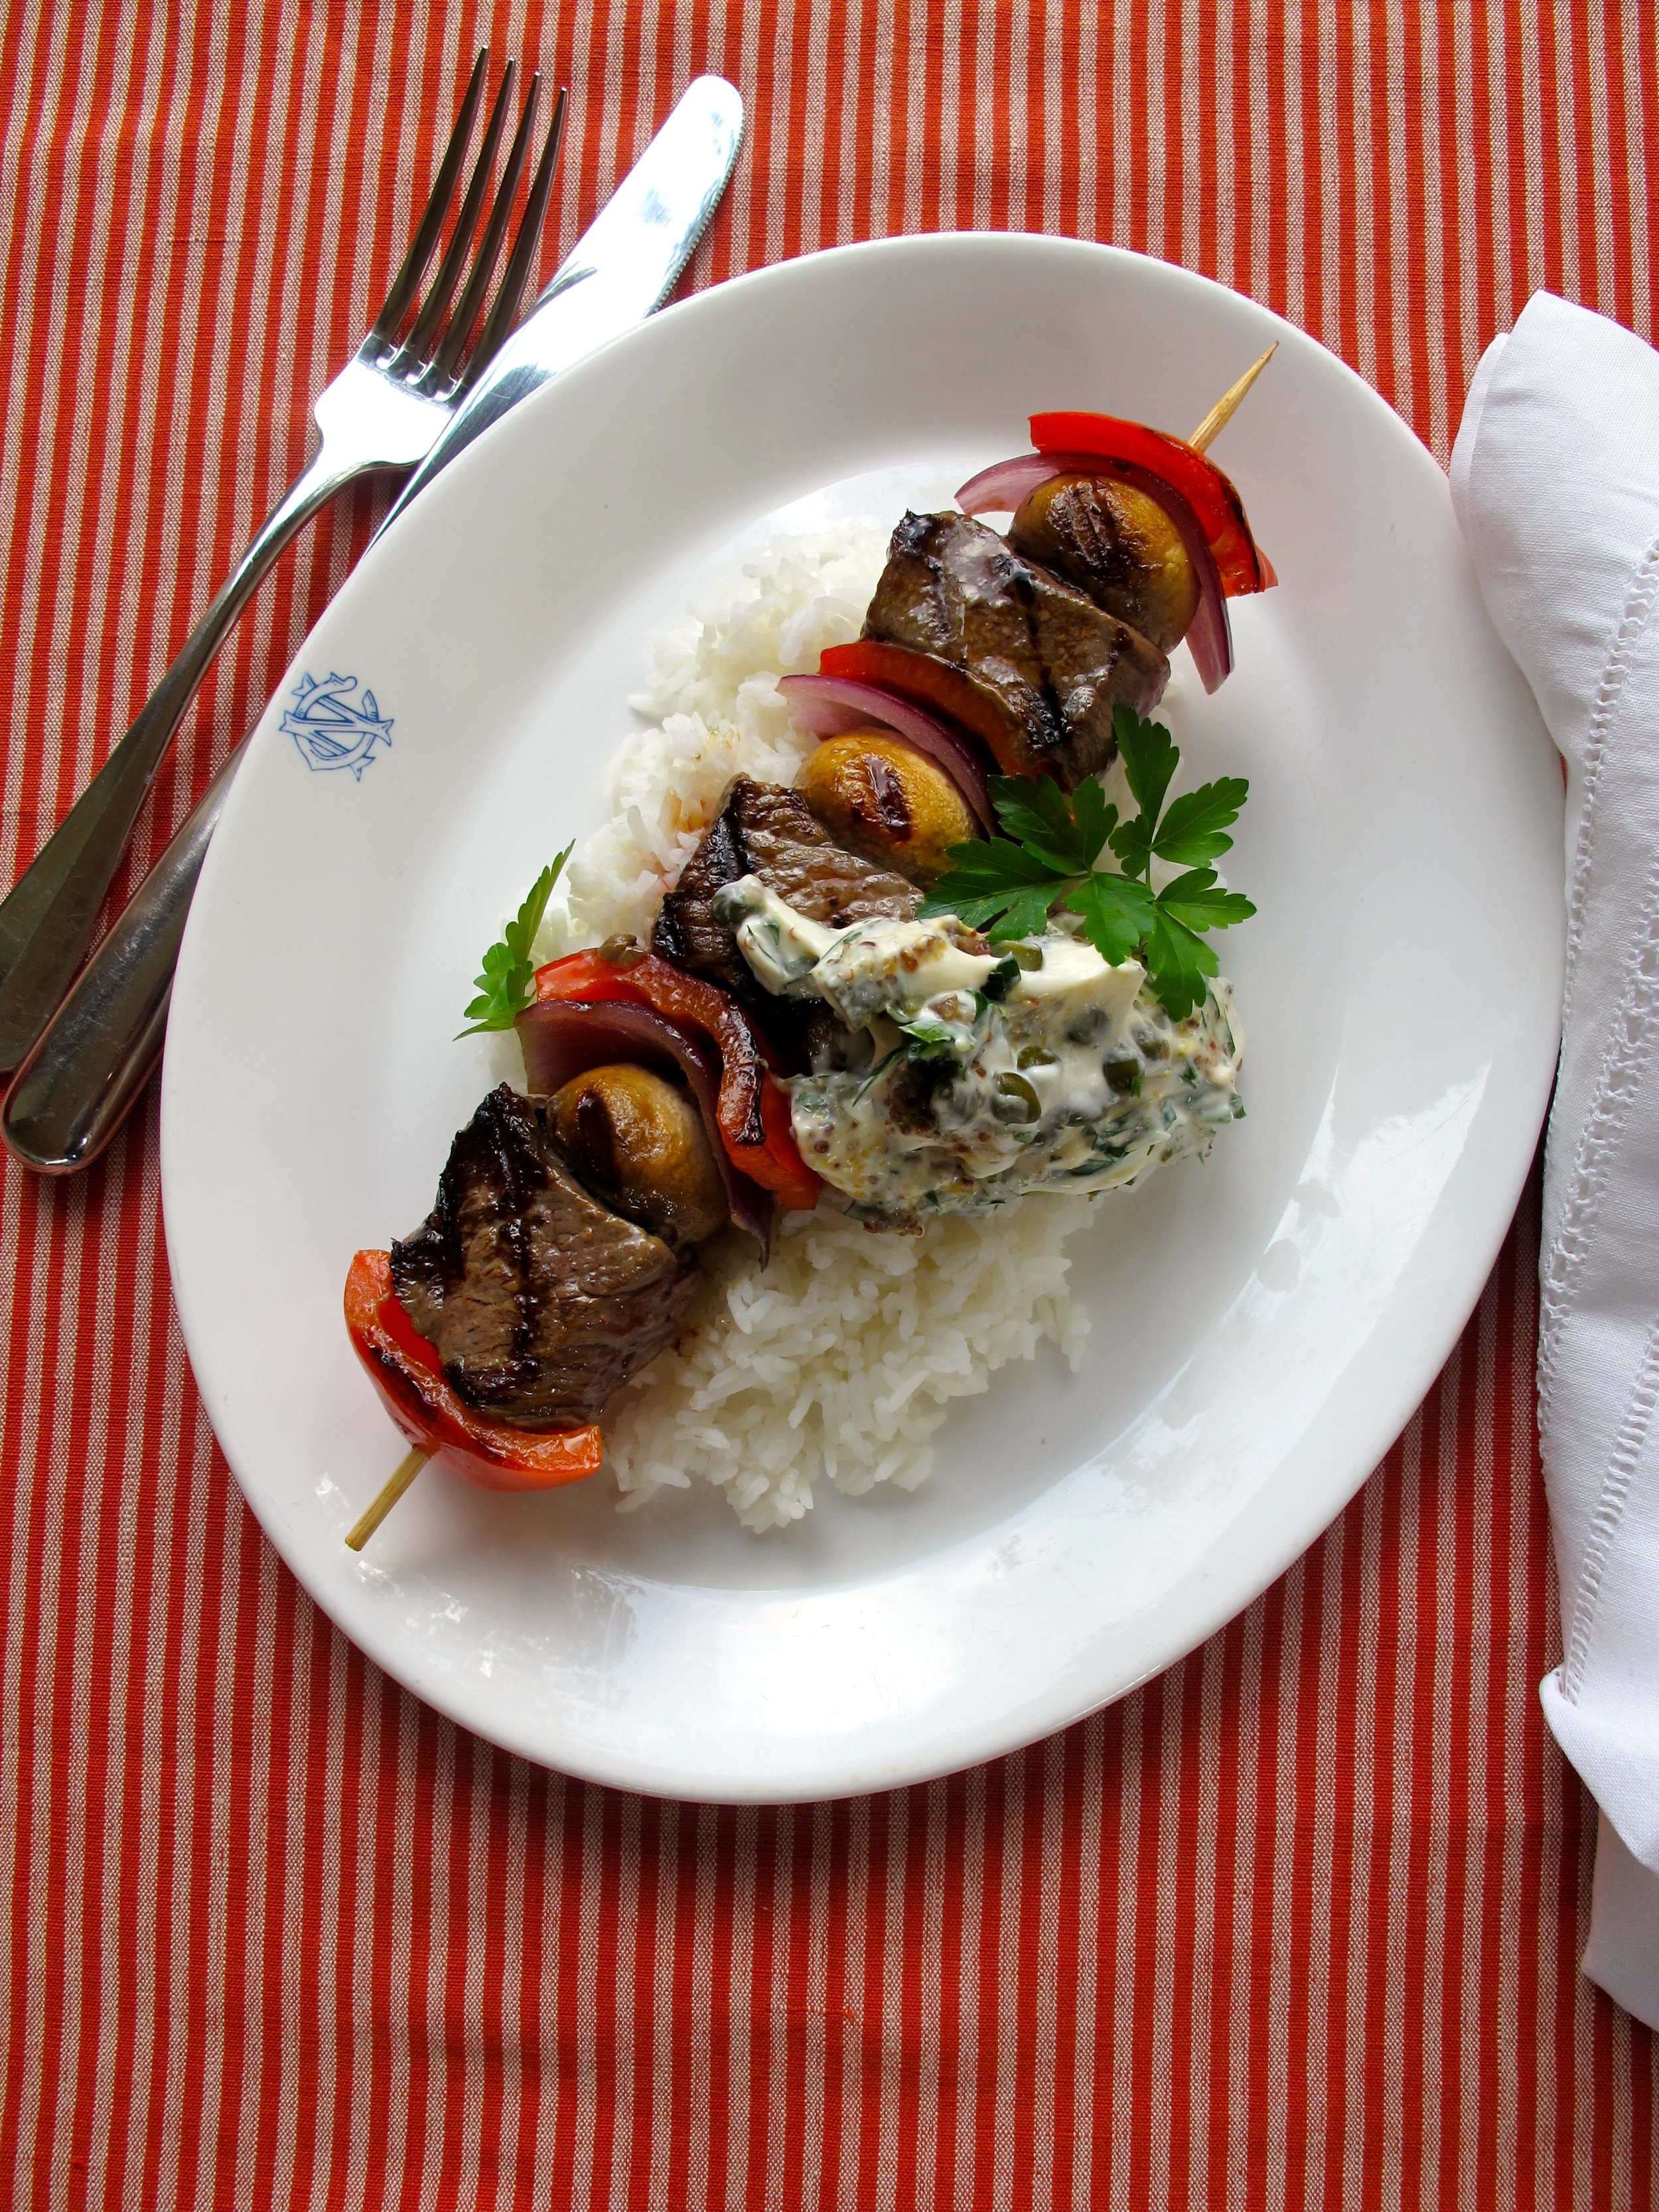 10.-Skewered-Beef-with-Remoulade-Sauce.jpg